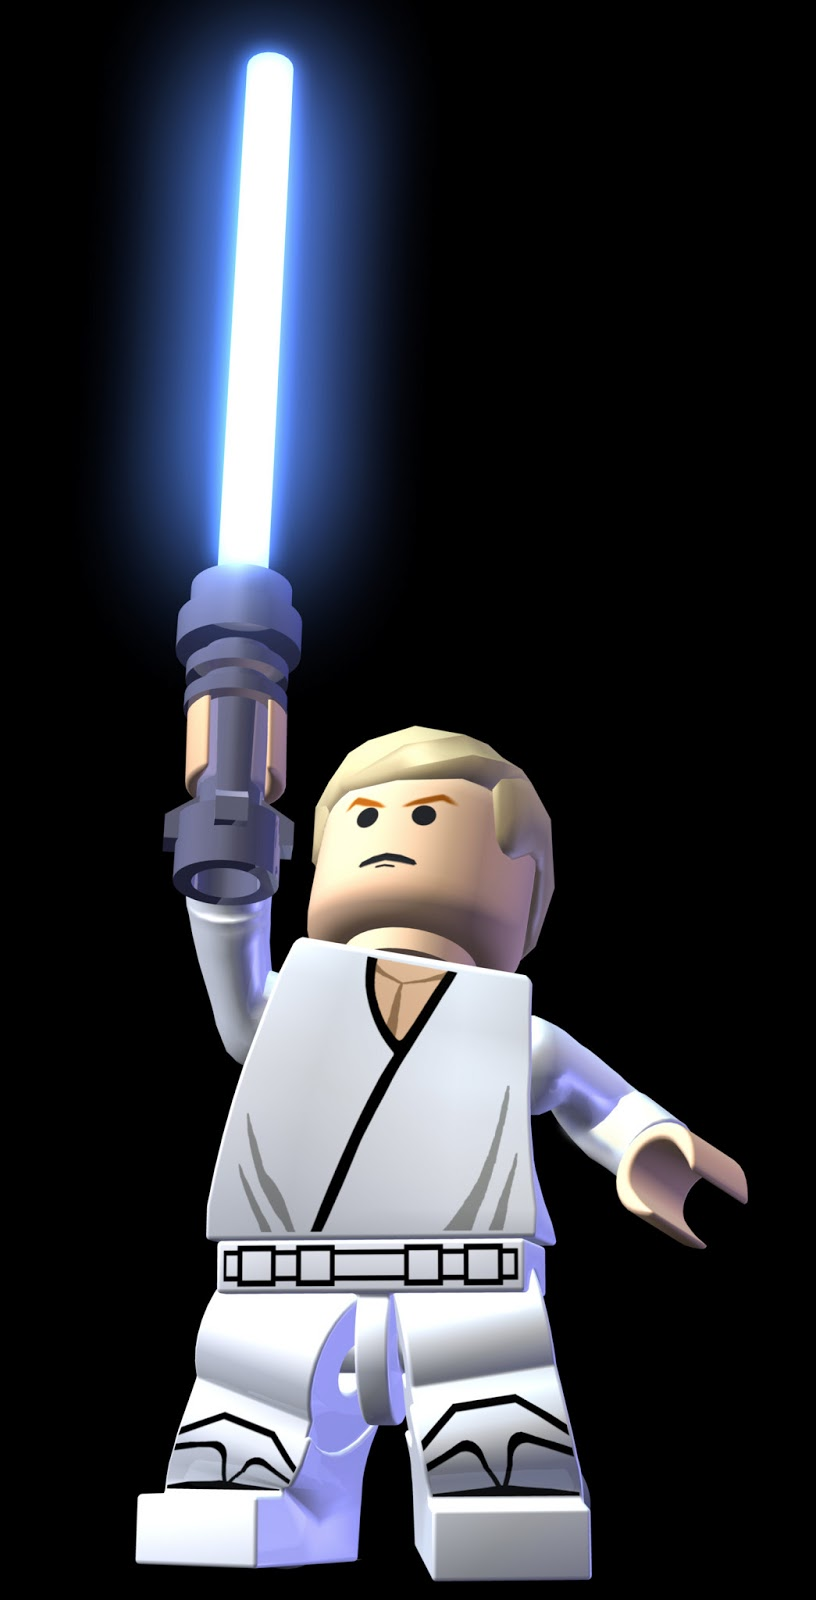 Learning to fly, but I ain't got wings: Call Me Skywalker